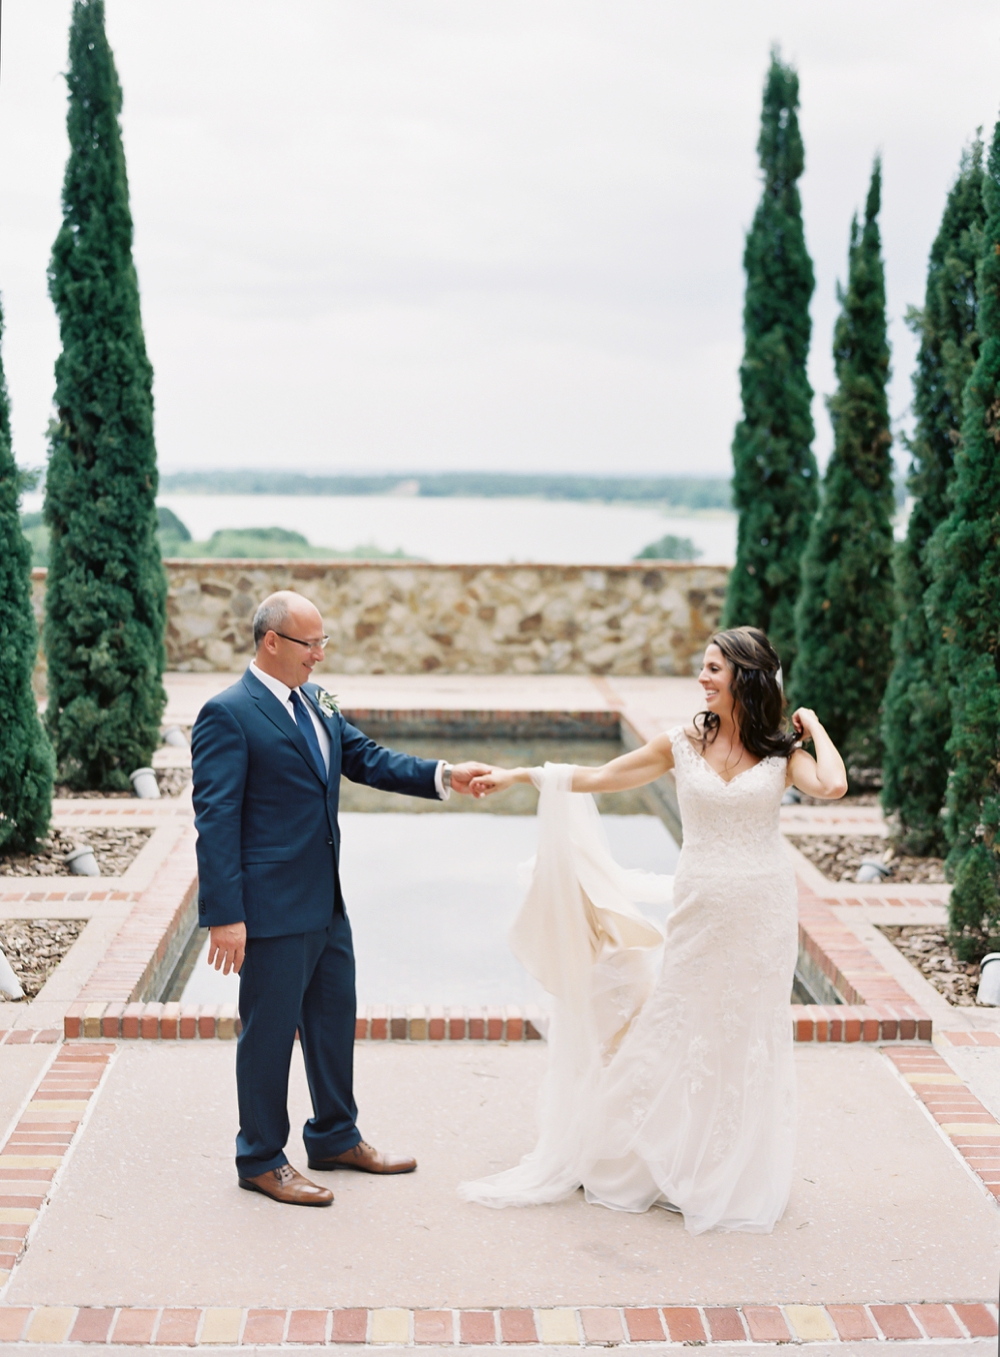 Vicki Grafton Photography - Fine Art Film Wedding Photographer - Bella Collina Wedding_0067.jpg